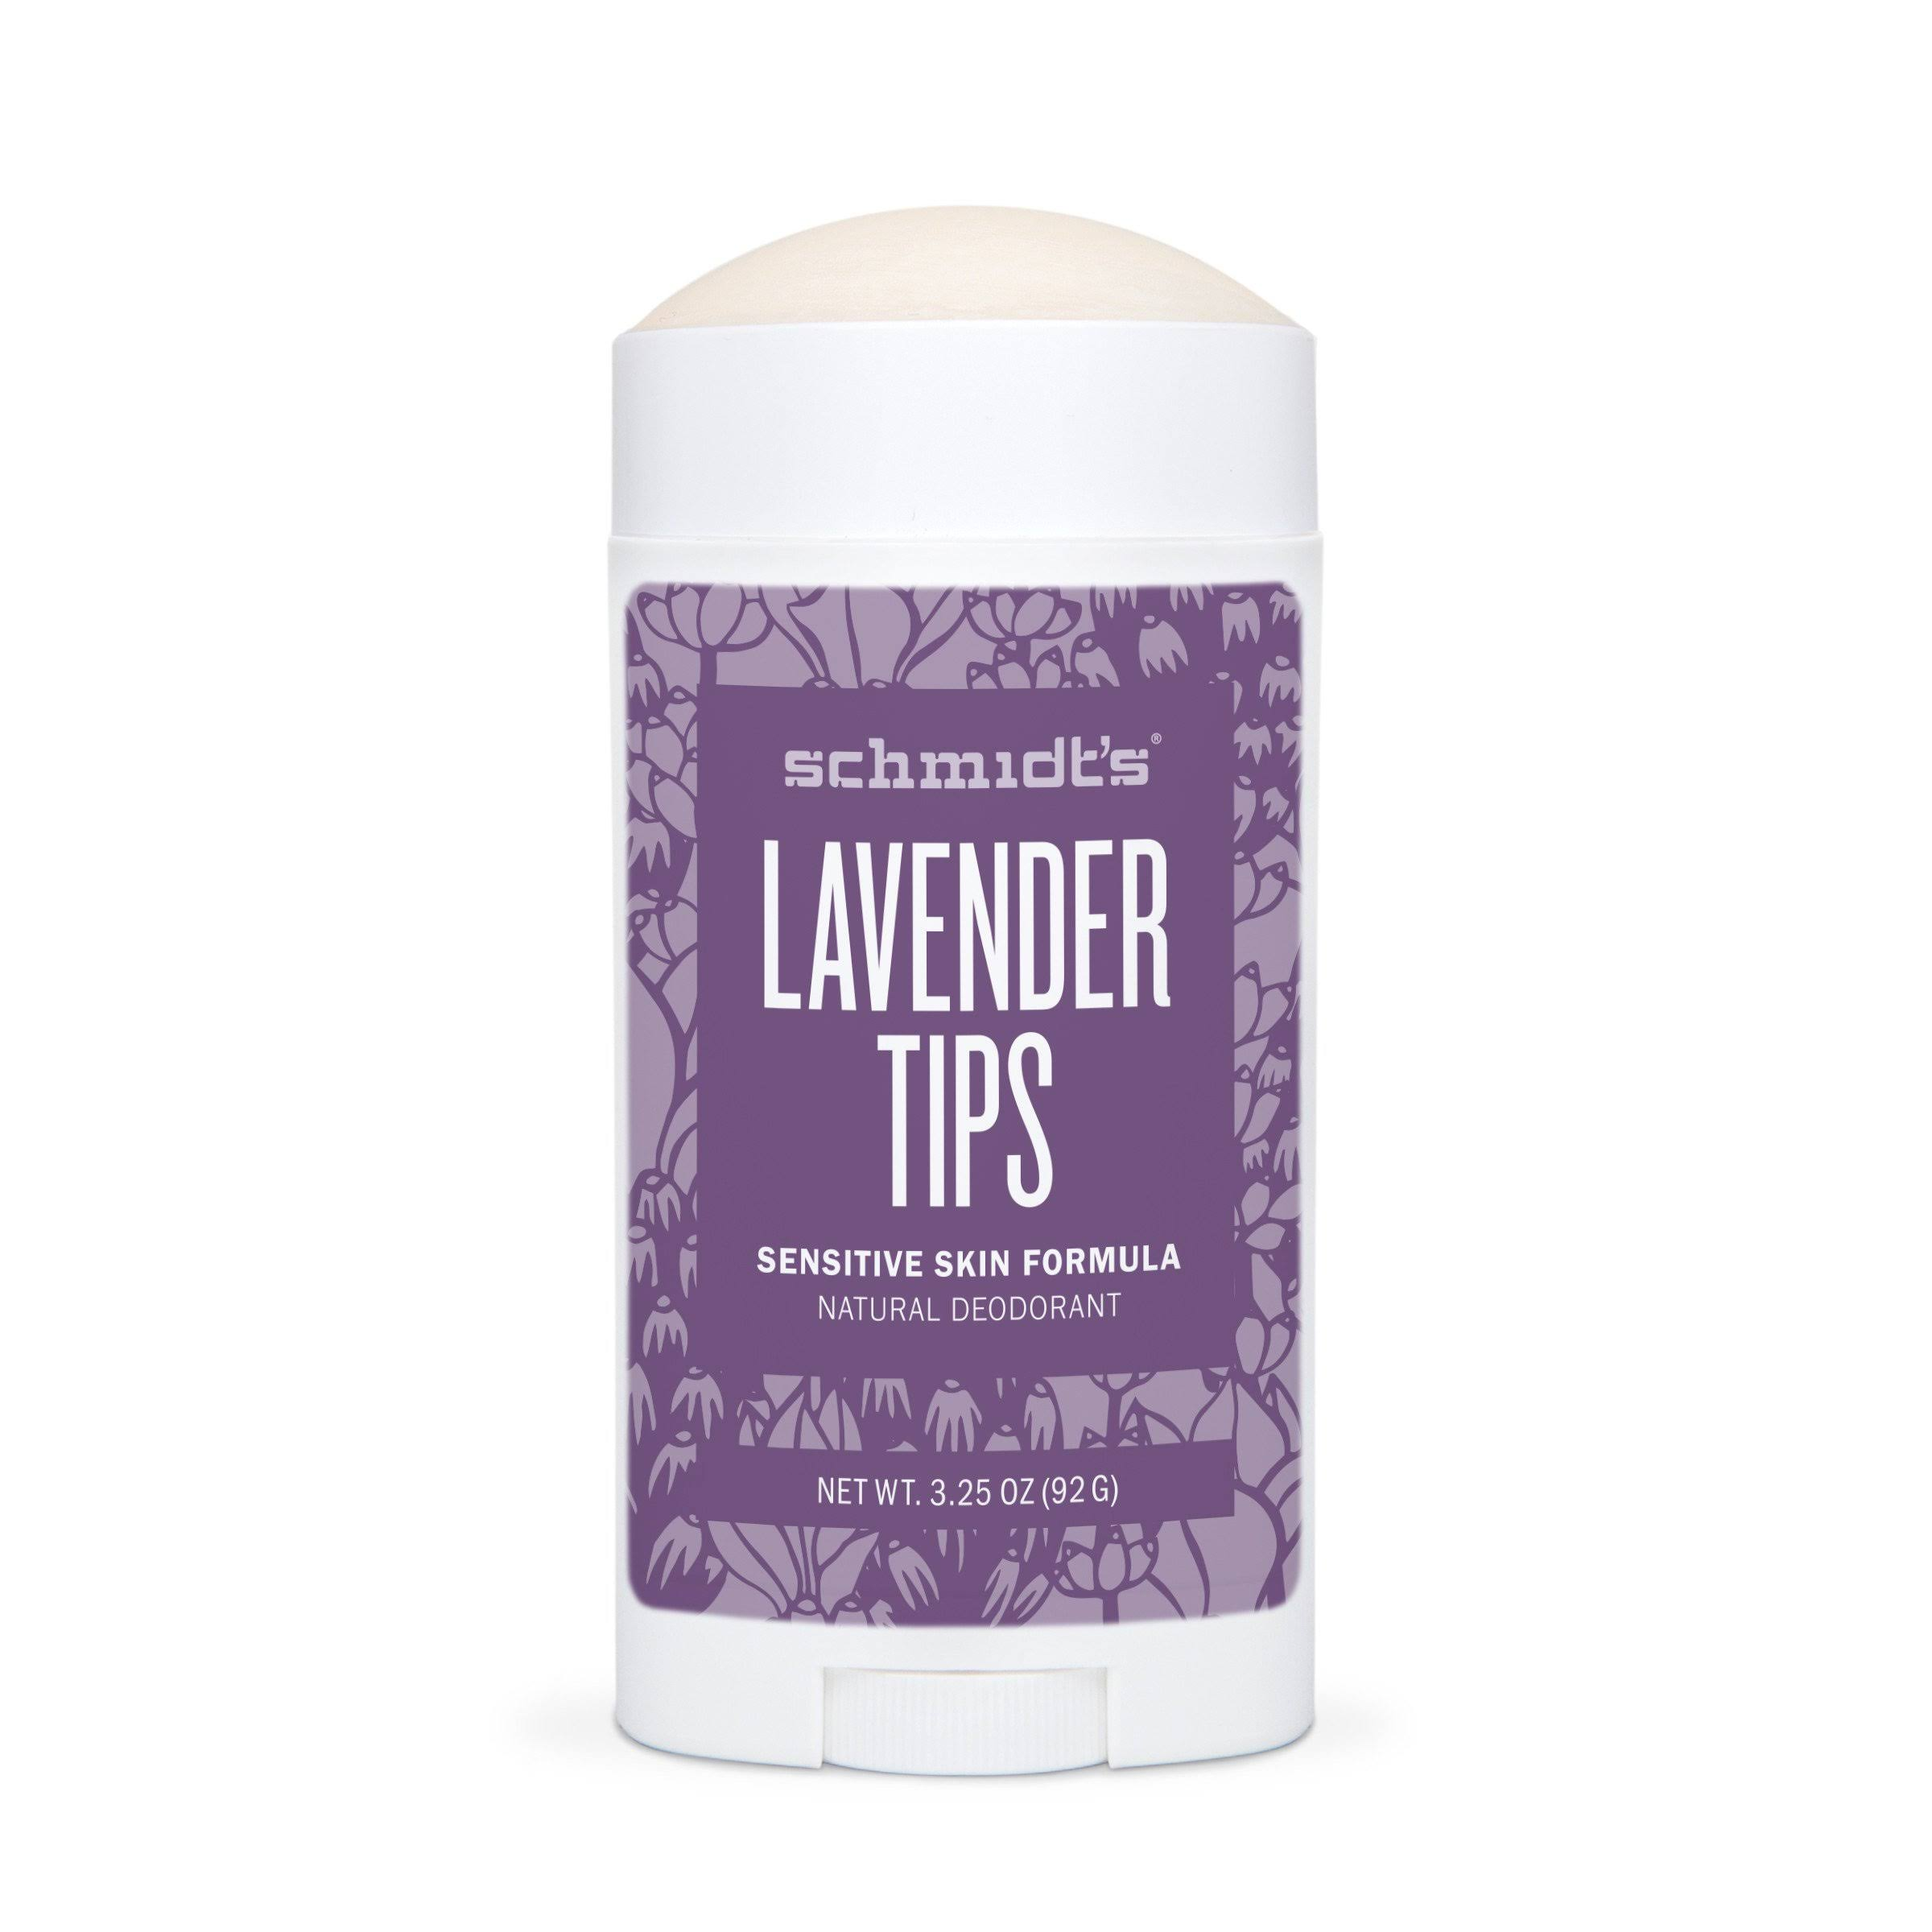 Schmidt's Lavender Tips Sensitive Skin Deodarant - 3.25oz